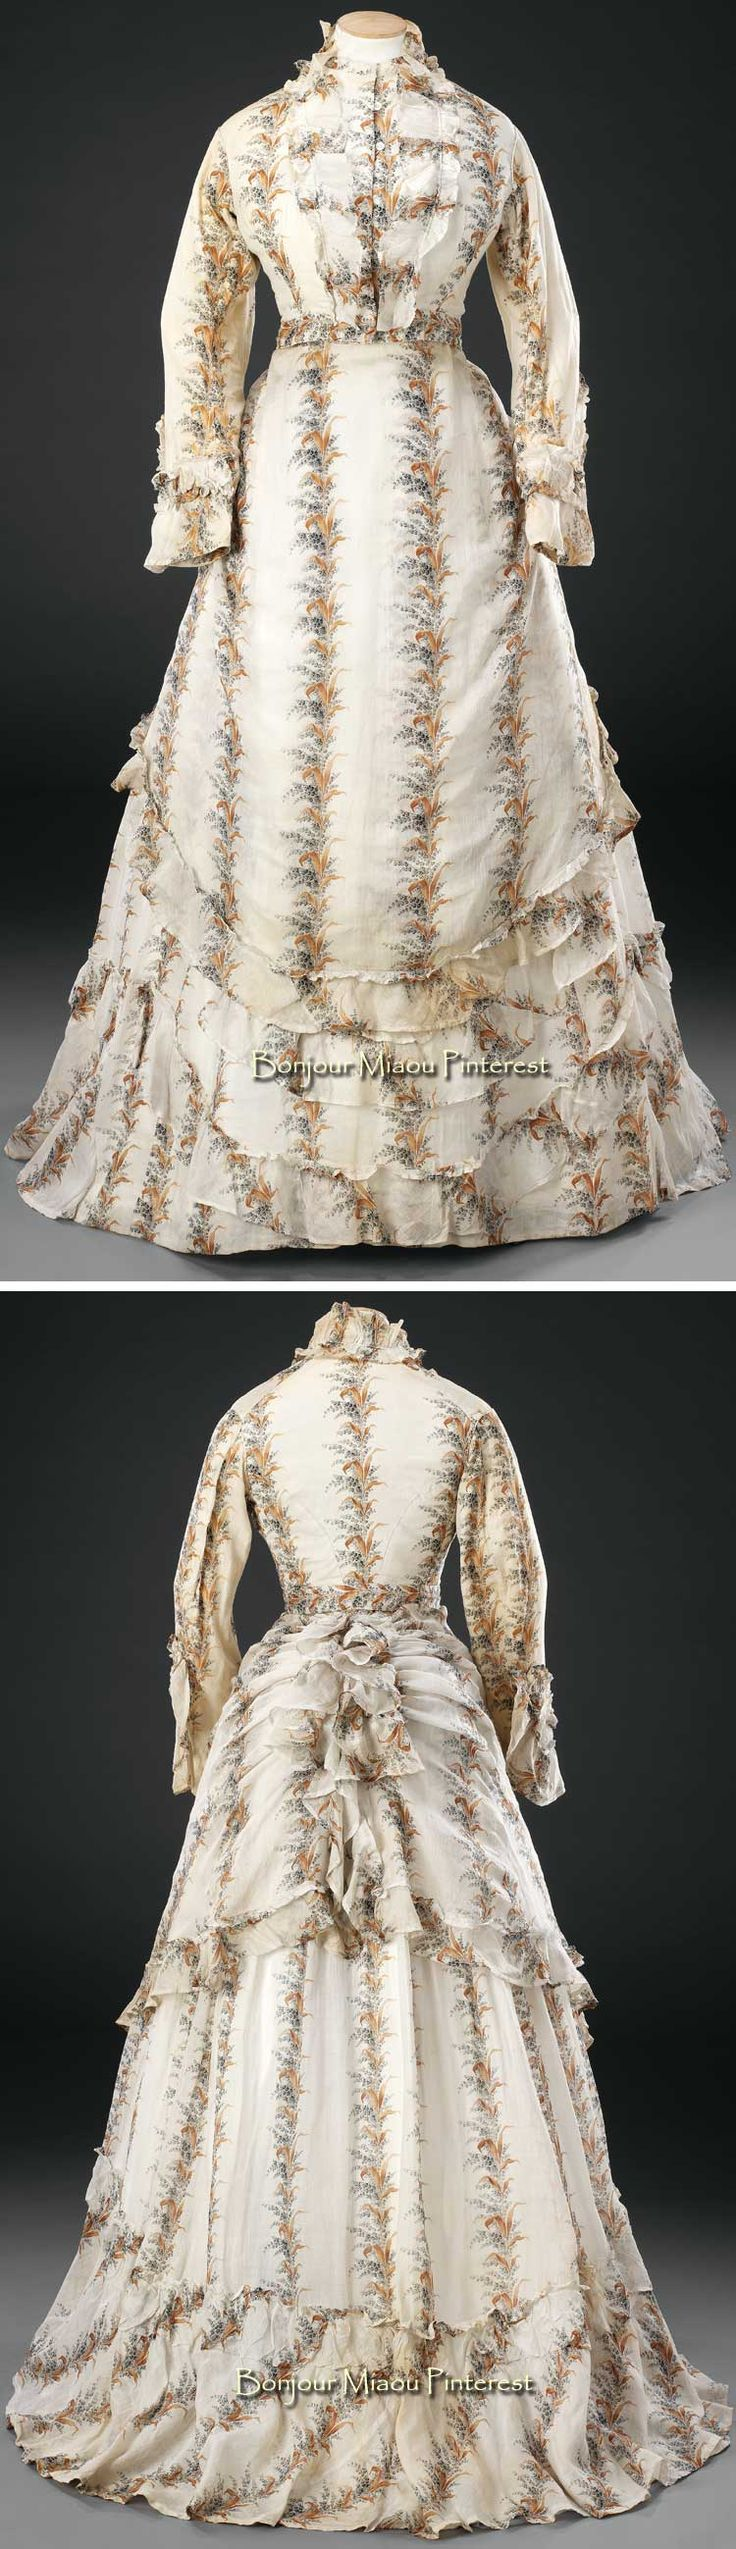 269 best 1868-1876 (Day Dress) images on Pinterest | 1870s fashion ...